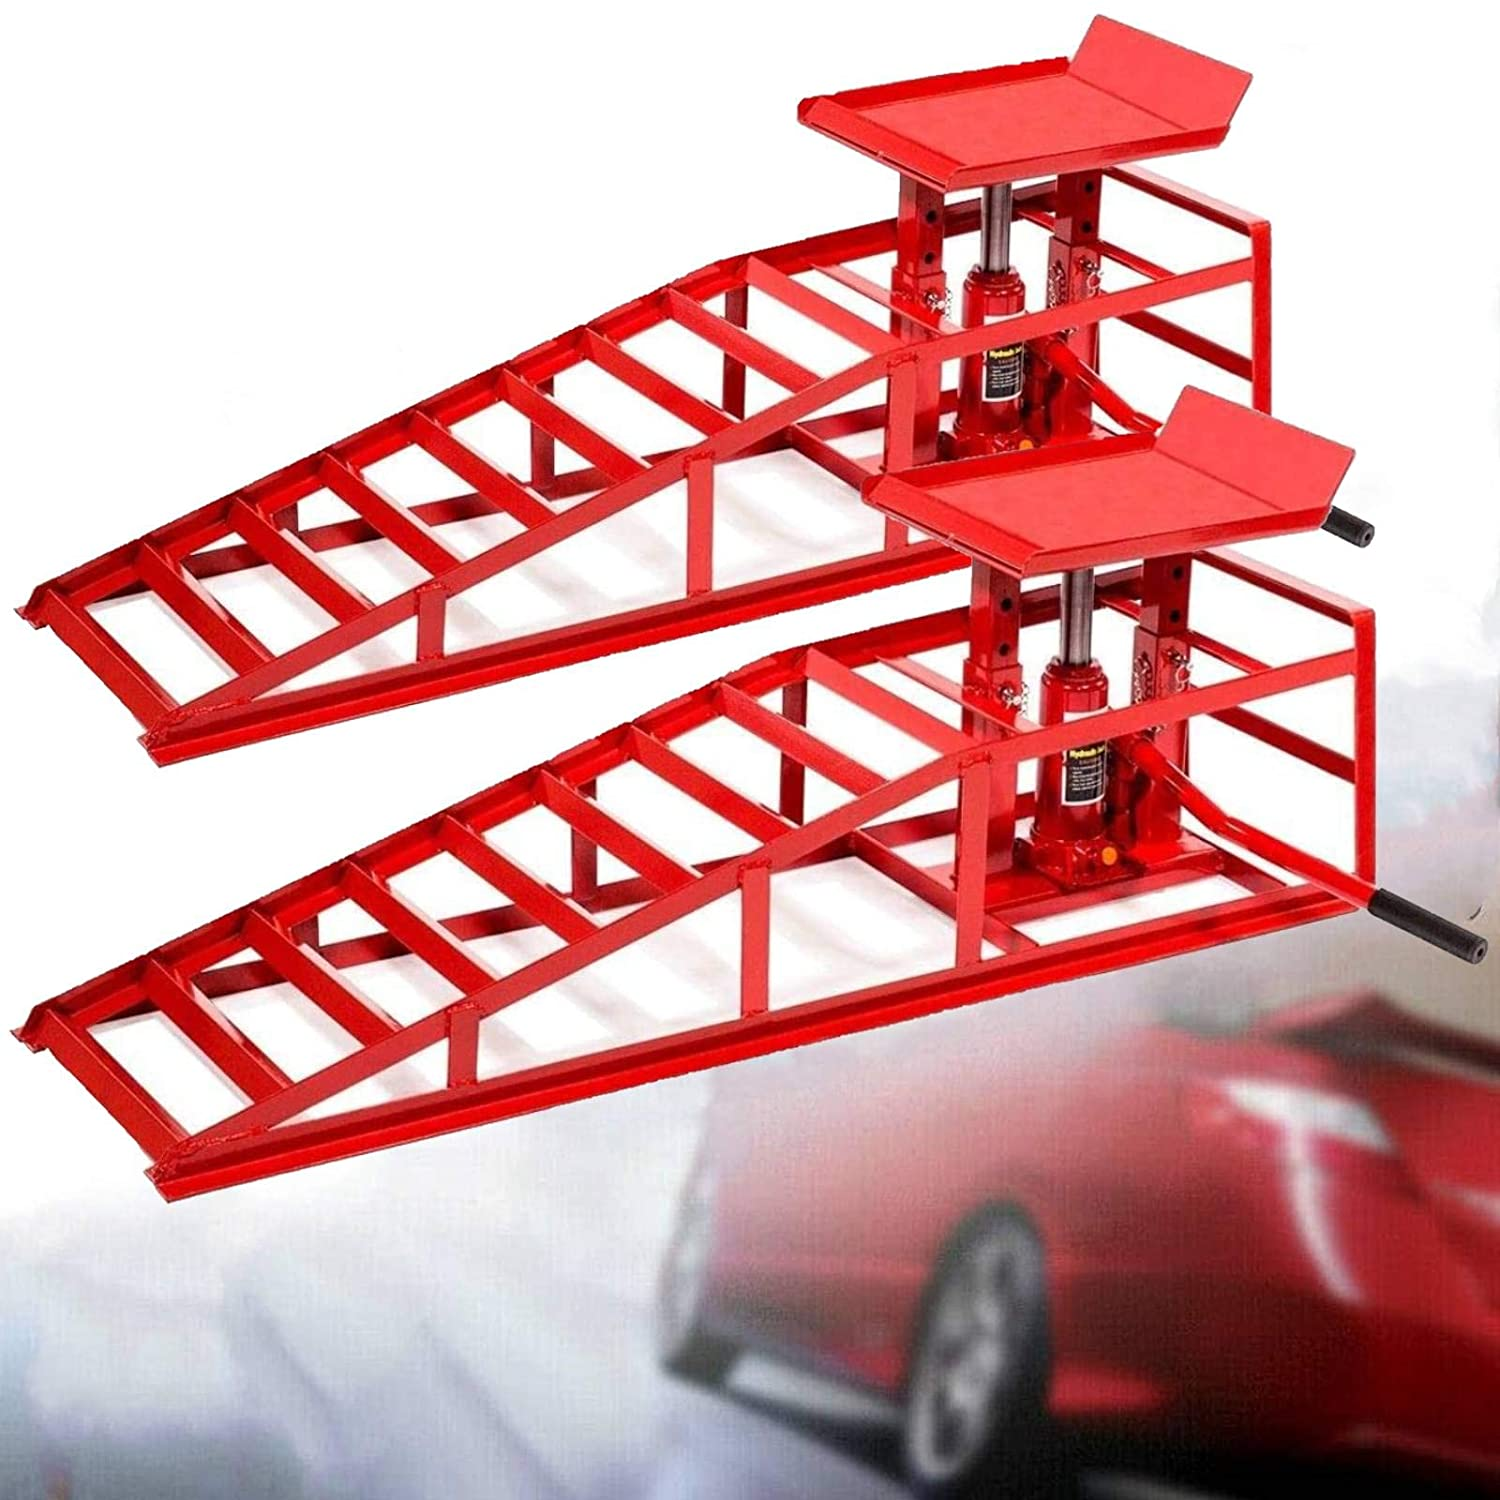 2PCS Auto Car Truck Service Ramps Lifts Heavy 10,000lbs Capacity HD Hydraulic Lift for Vehicle Auto Truck Garage Repair Steel Frame